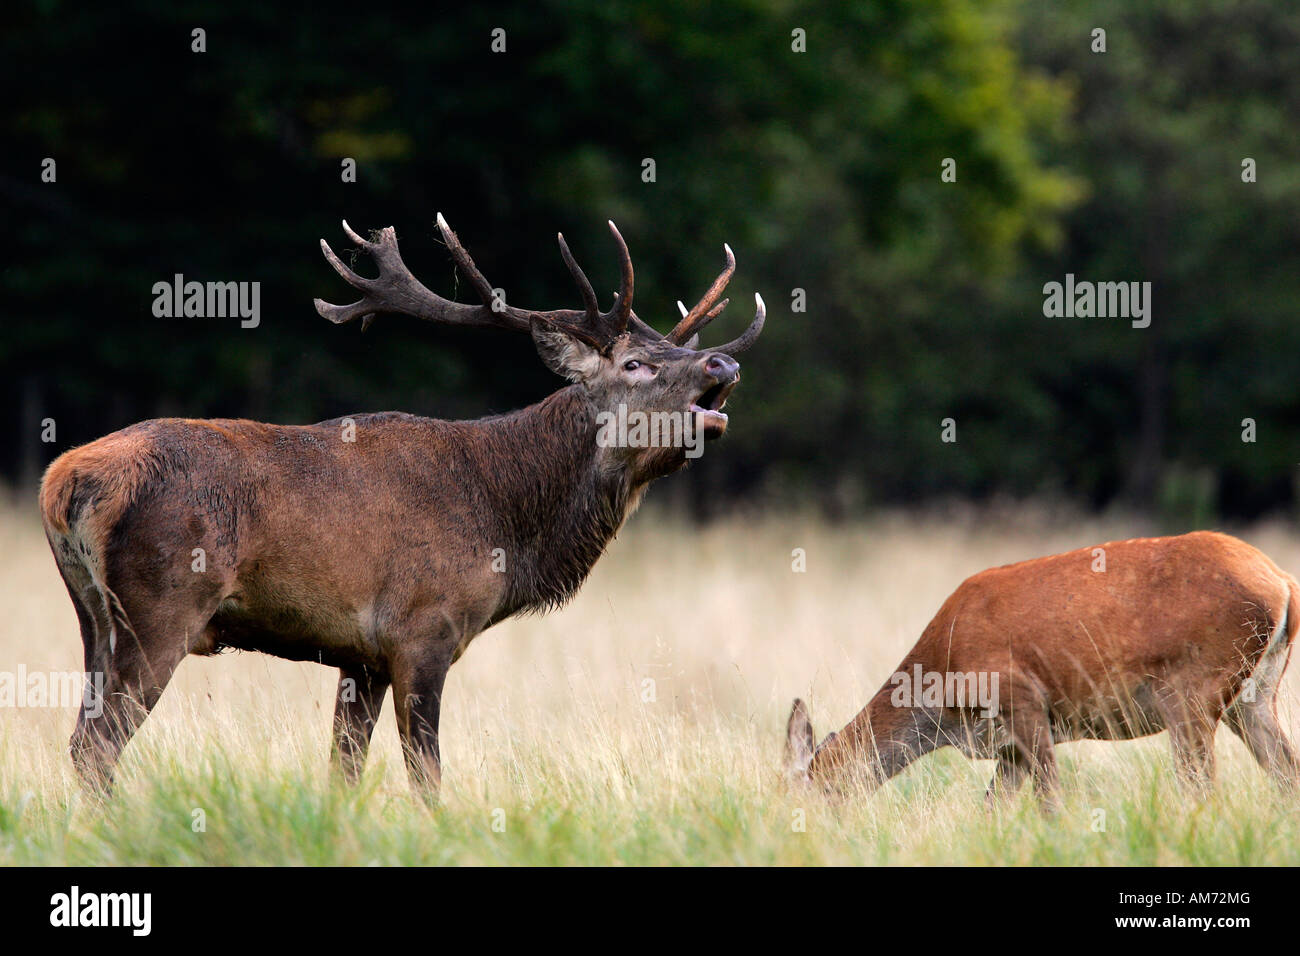 Belling red stag during the rut with grazing hind - red deer in heat - male and female (Cervus elaphus) Stock Photo